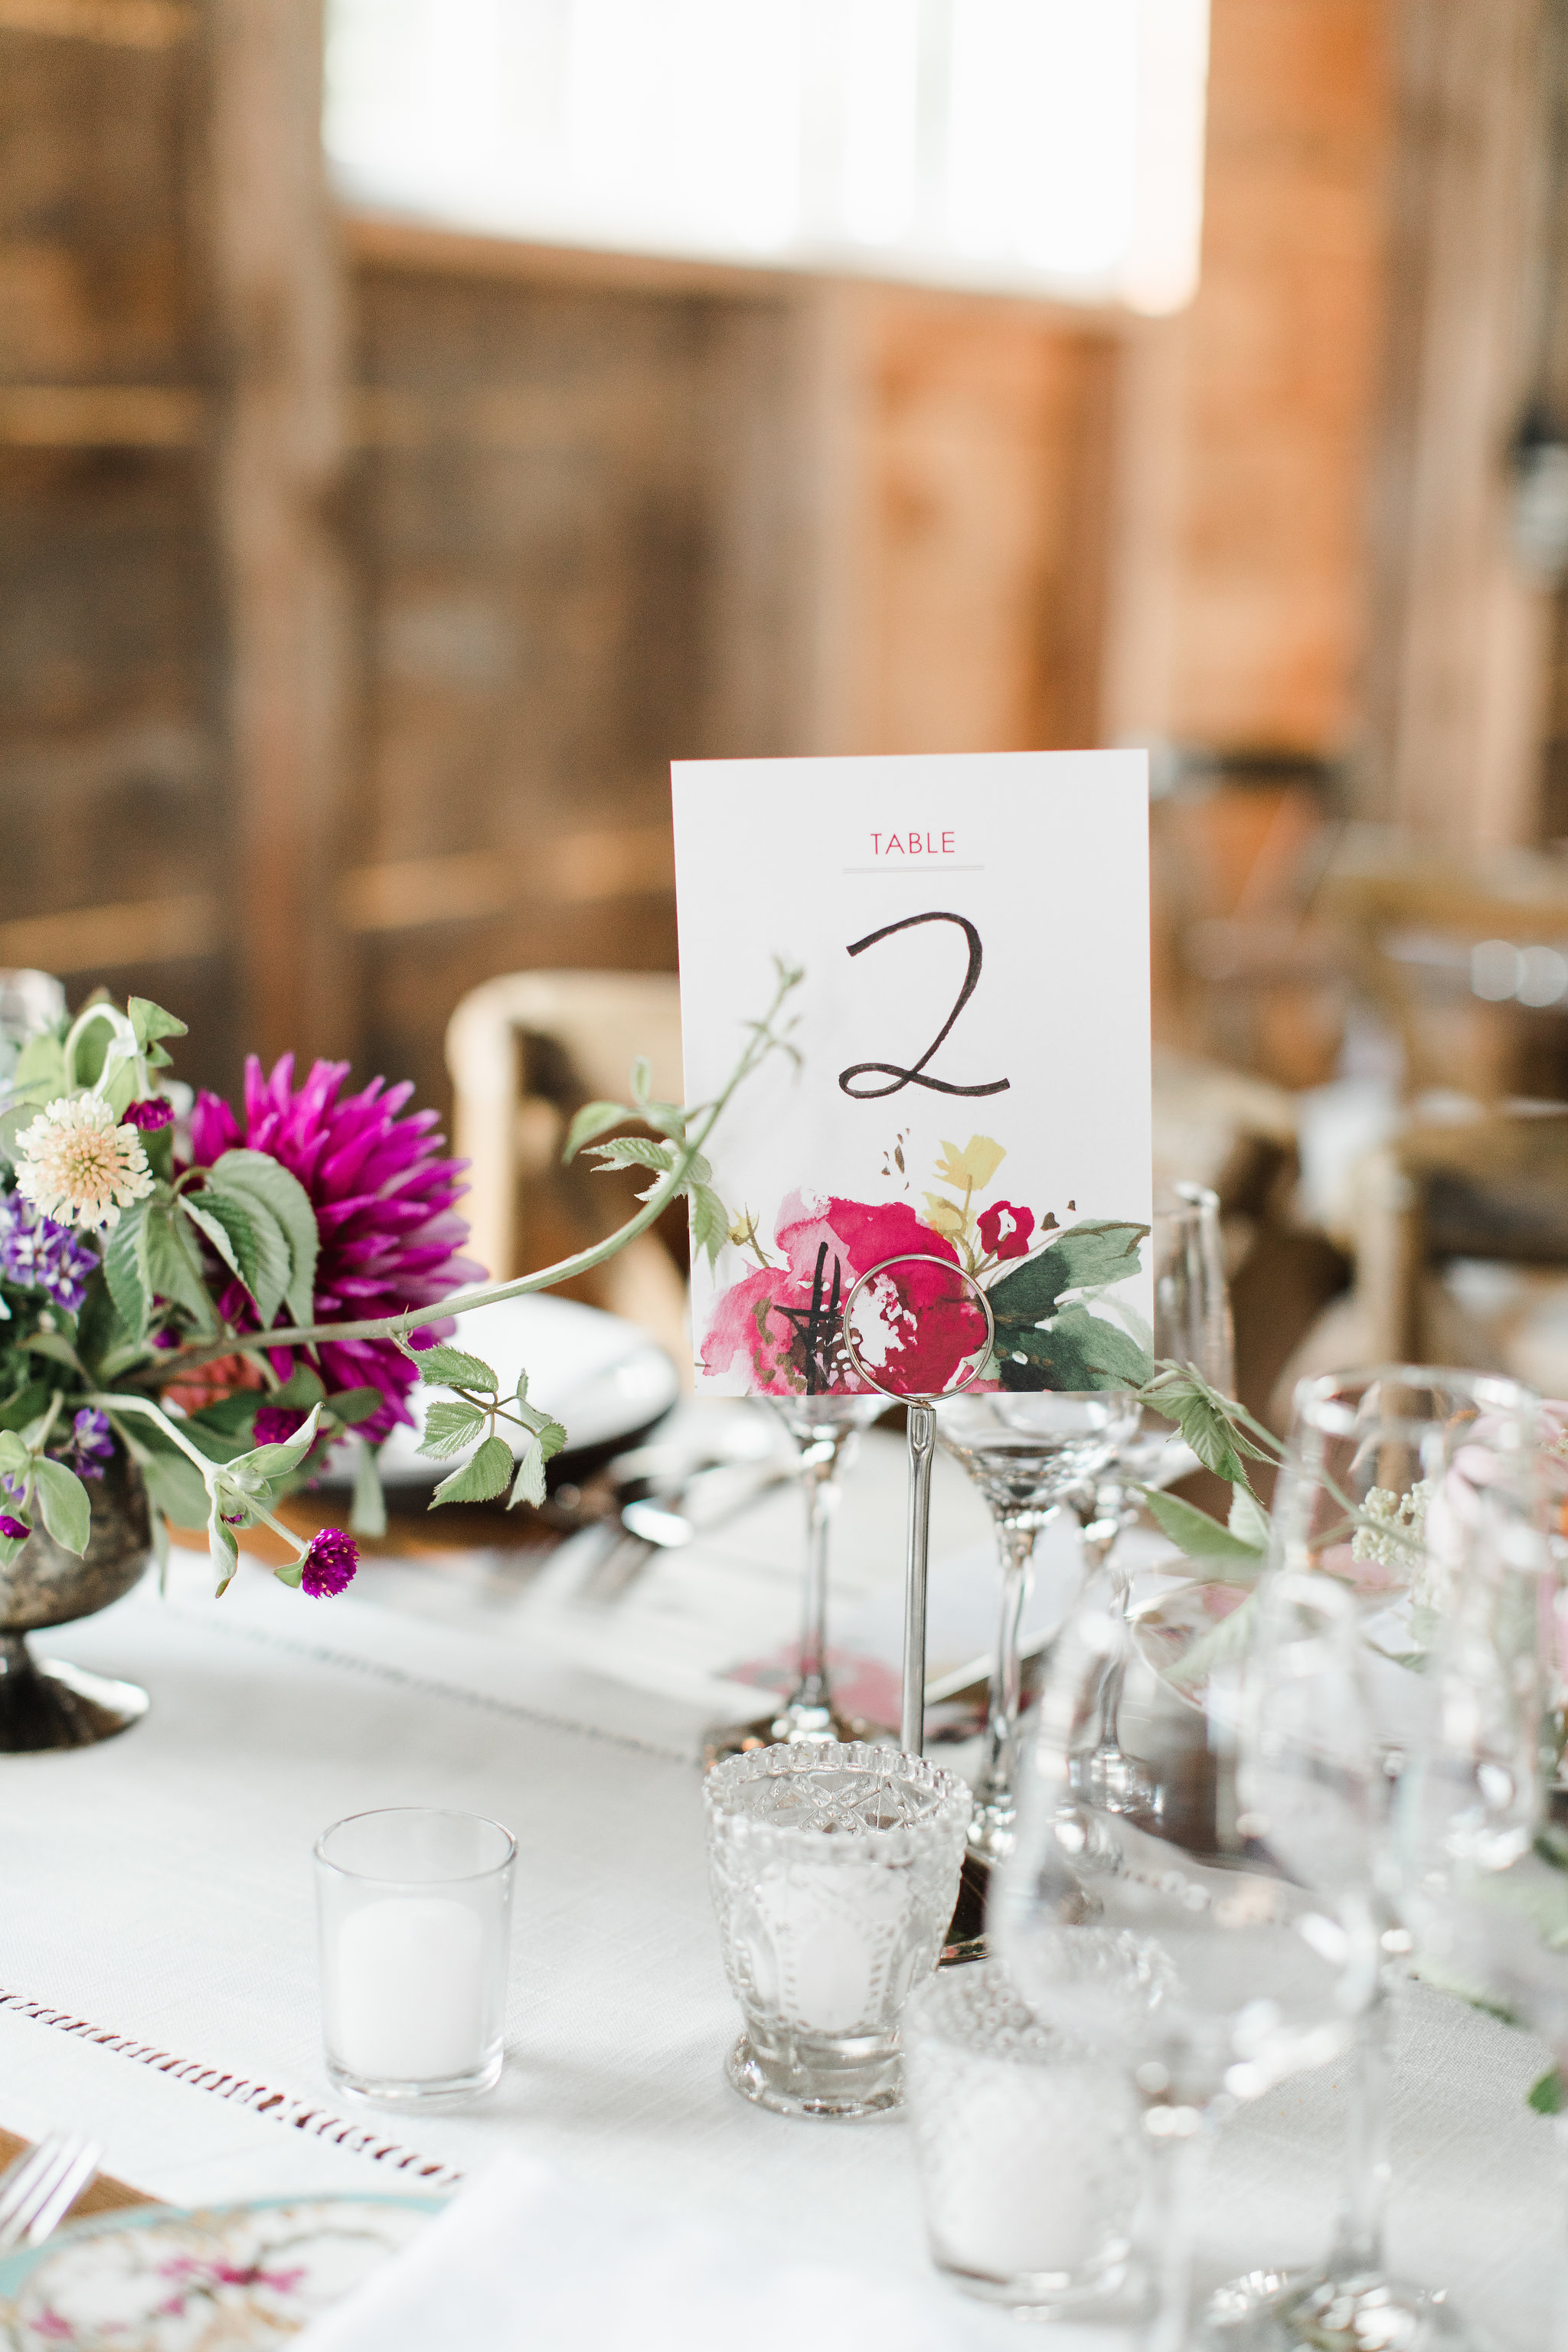 Watershed-Floral-Reception-Details-Shady-Lane-Farm-Barn-Wedding-47.jpg